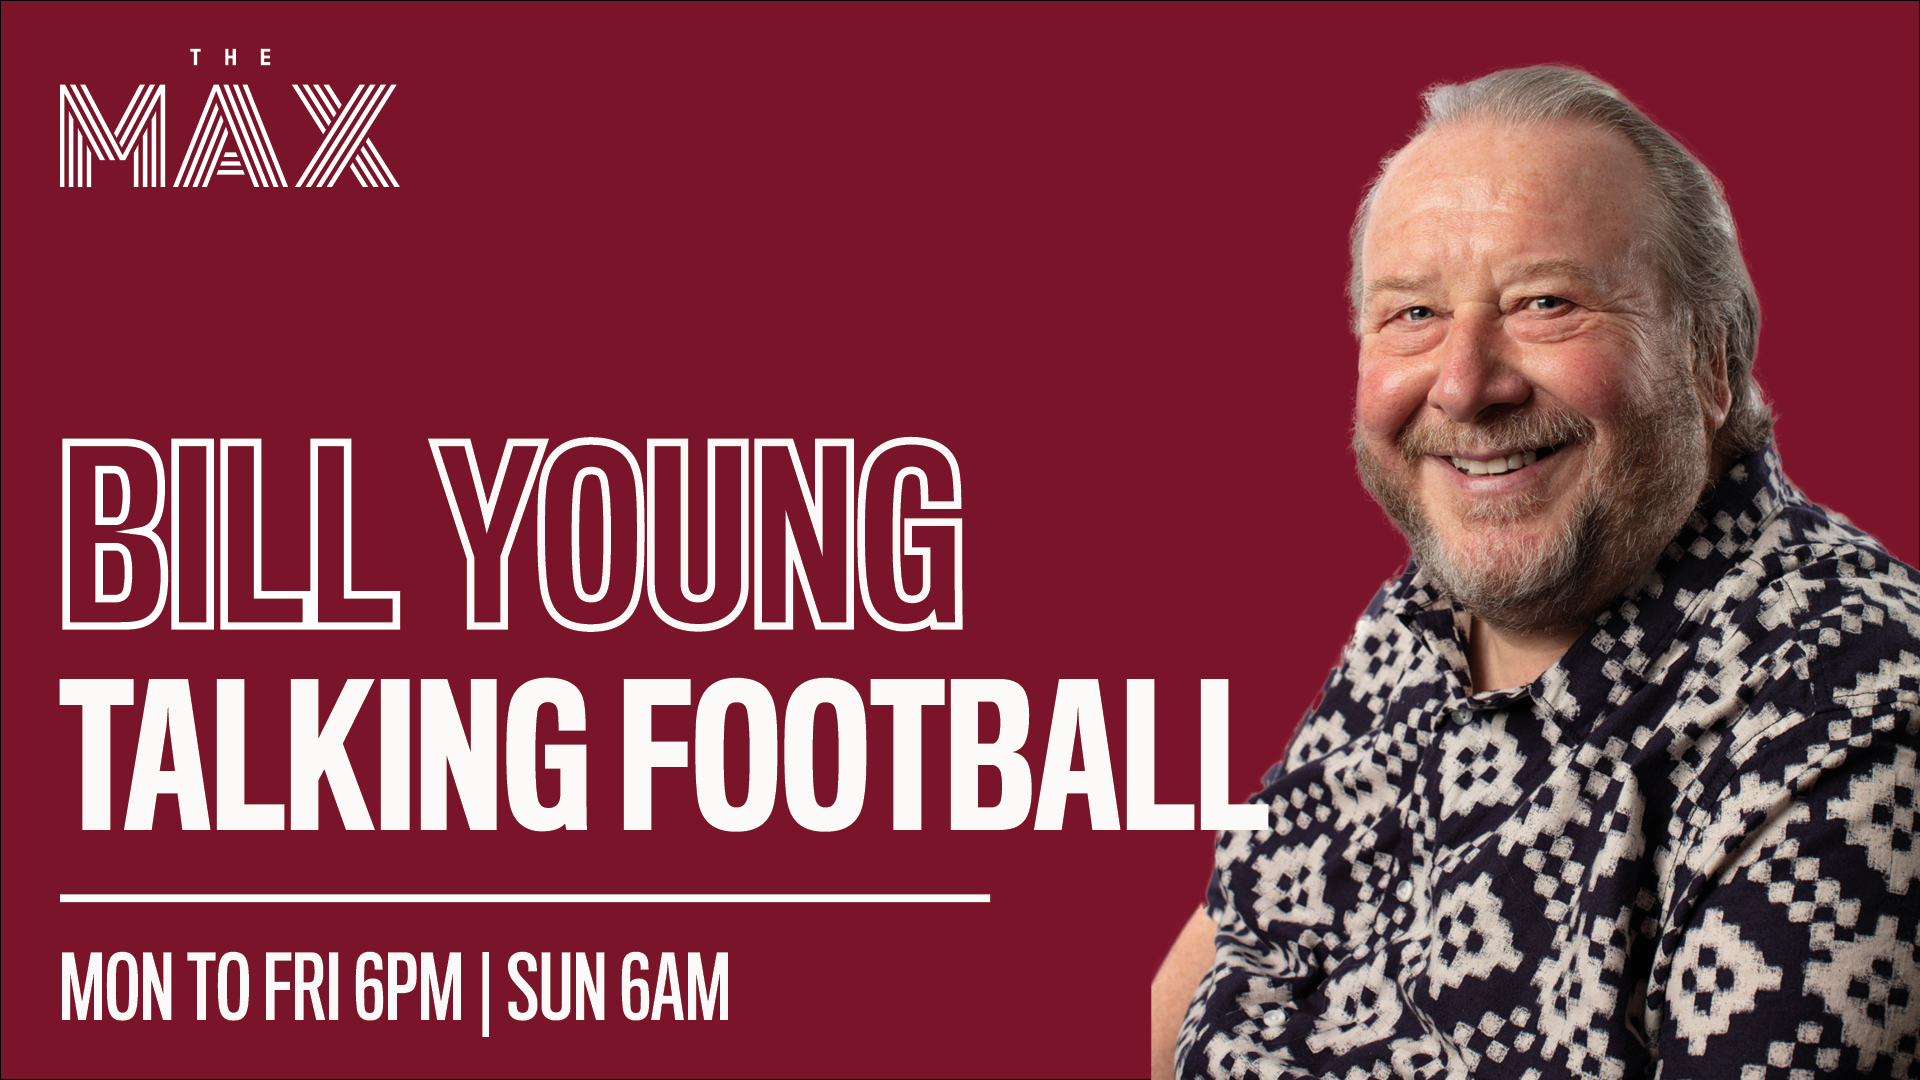 Talking Football with Bill Young - Friday 26th February